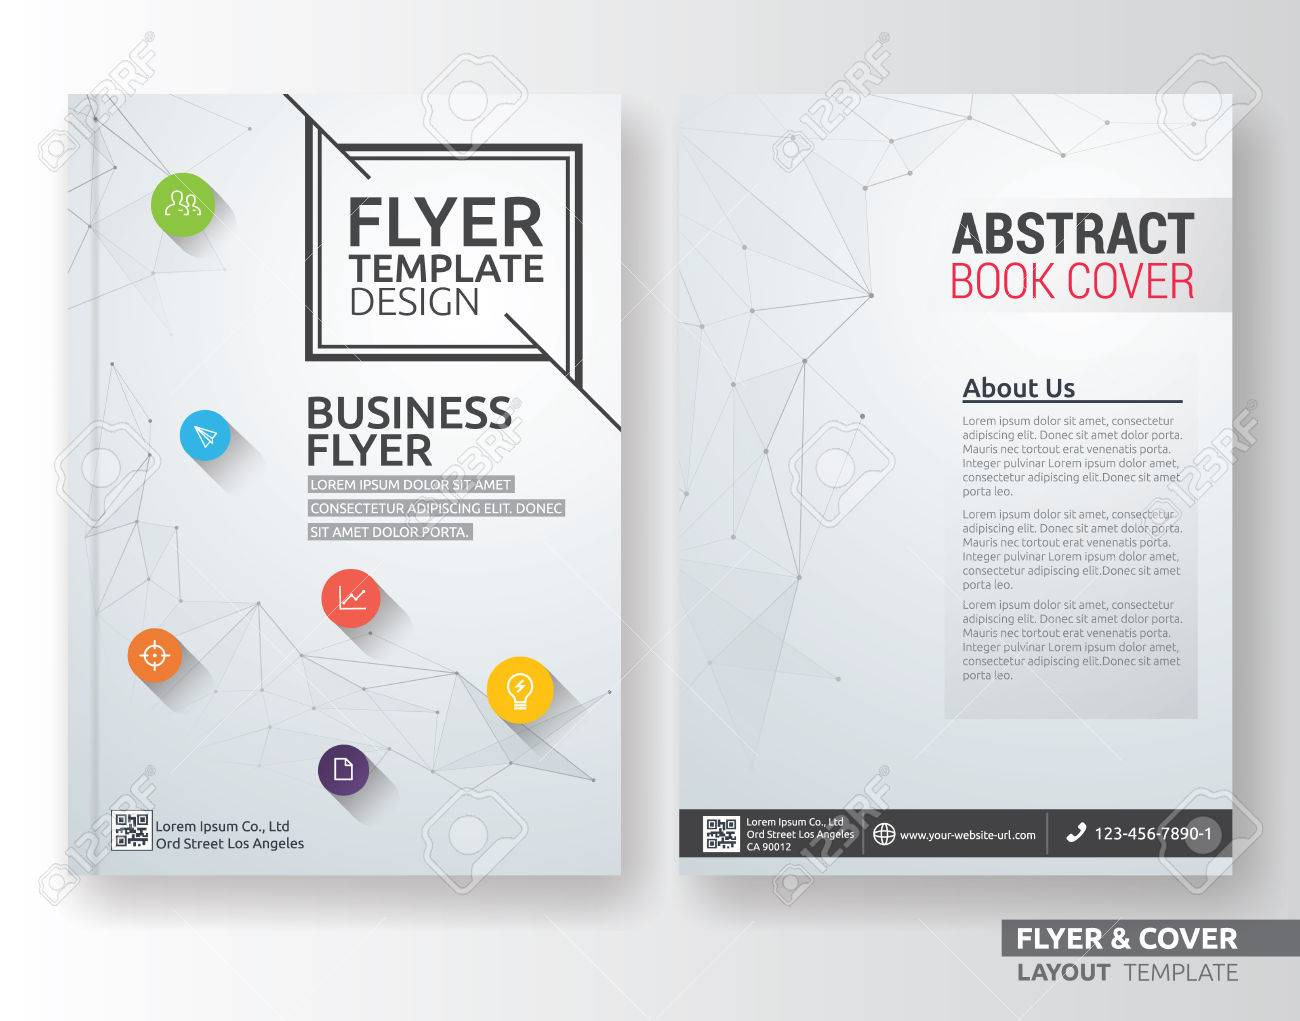 Multipurpose corporate business layout template design. Suitable for leaflet, brochure, book cover and annual report. Layout in A4 size with bleeds. - 61113038